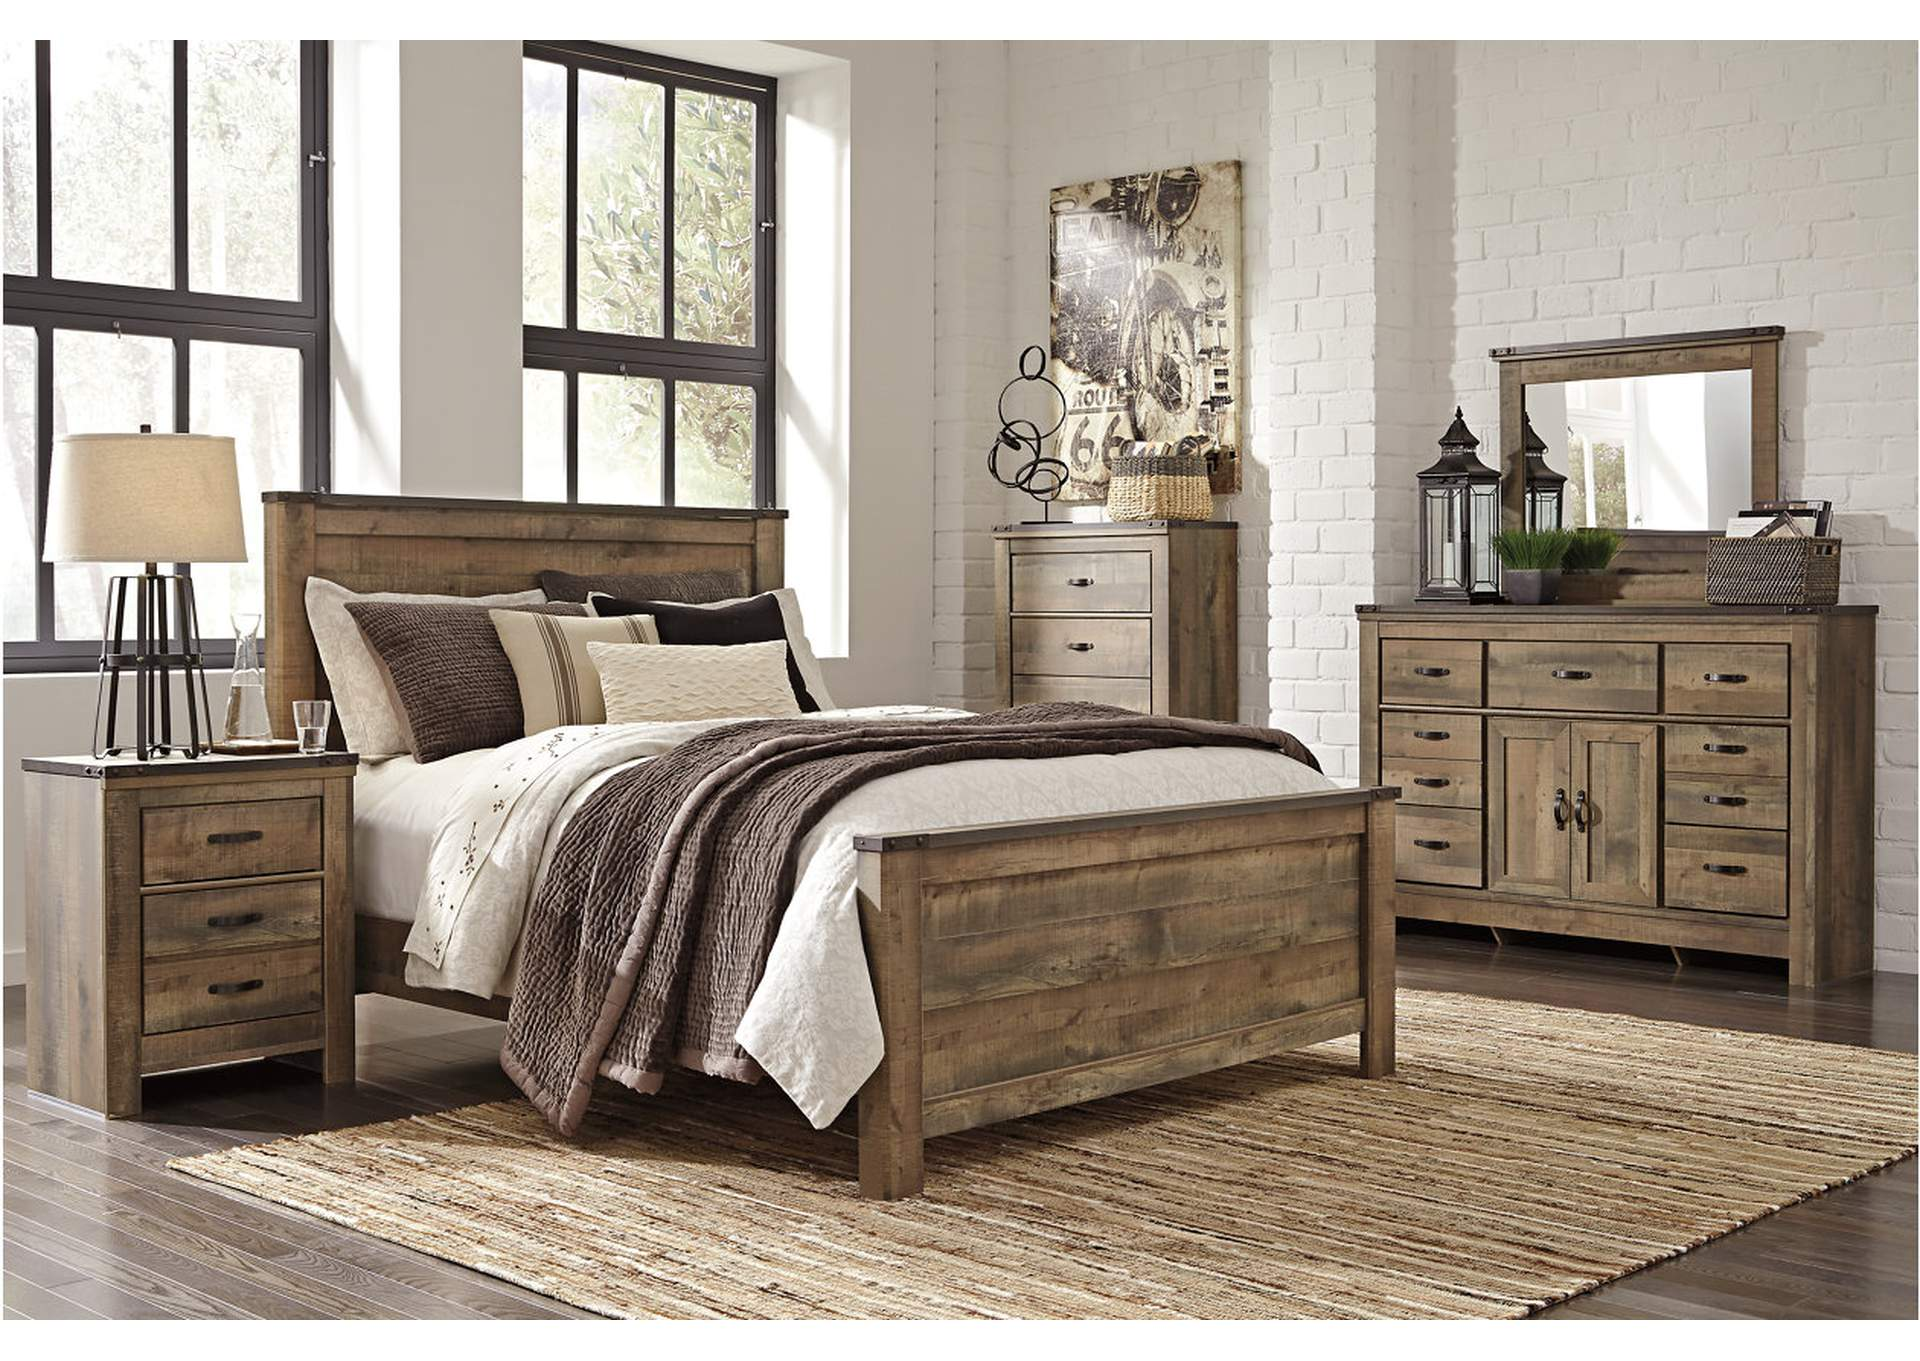 Trinell Queen Panel Bed w/ Dresser and Mirror,Signature Design By Ashley